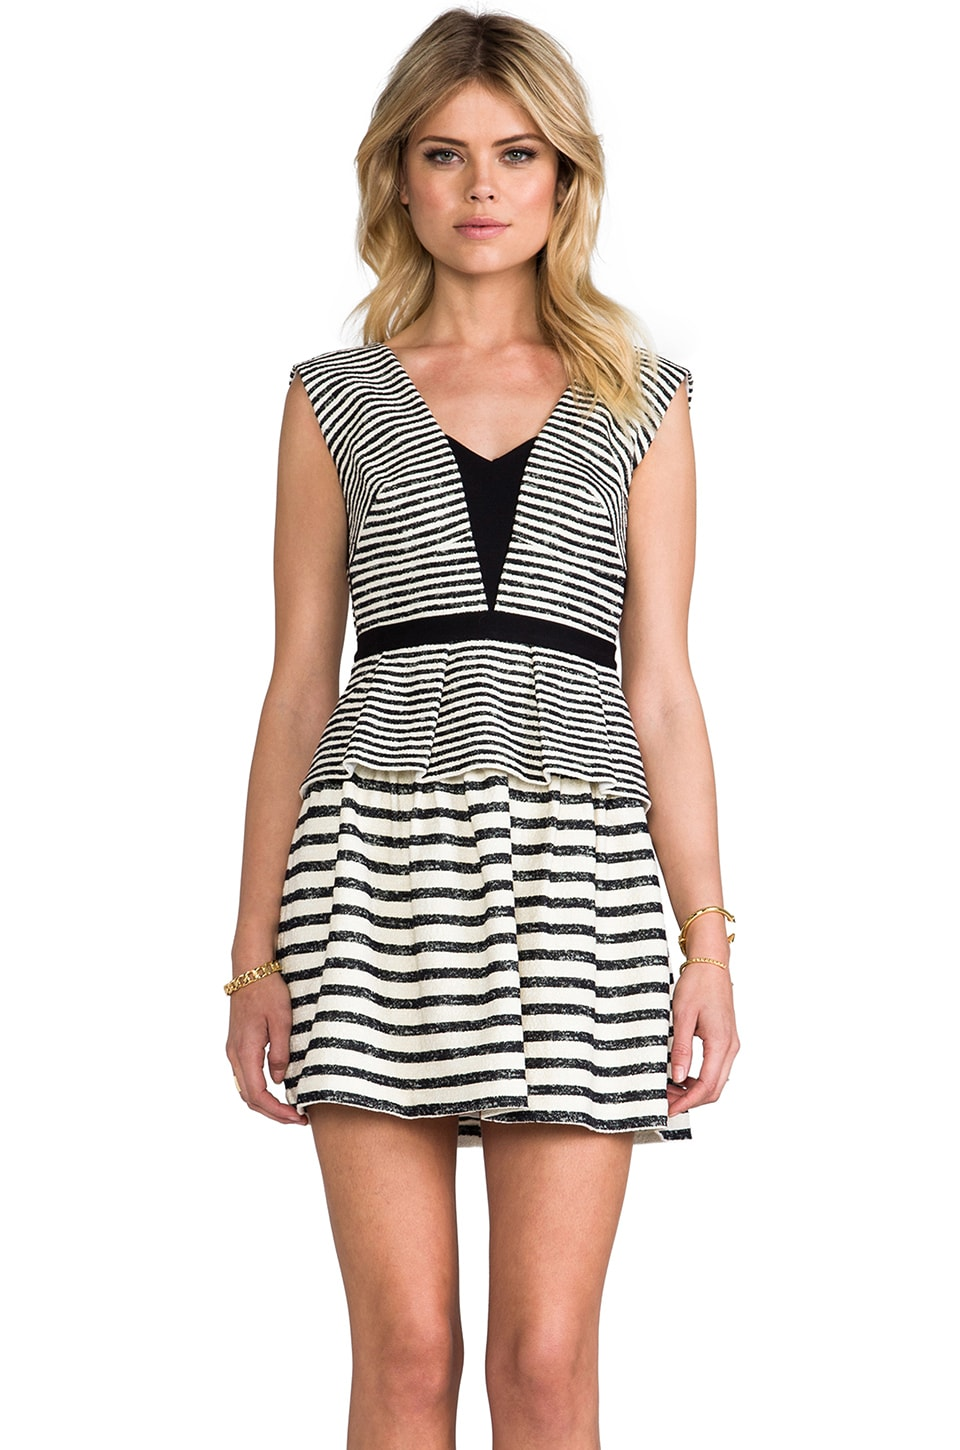 BCBGMAXAZRIA Piper Dress in Black White Combo